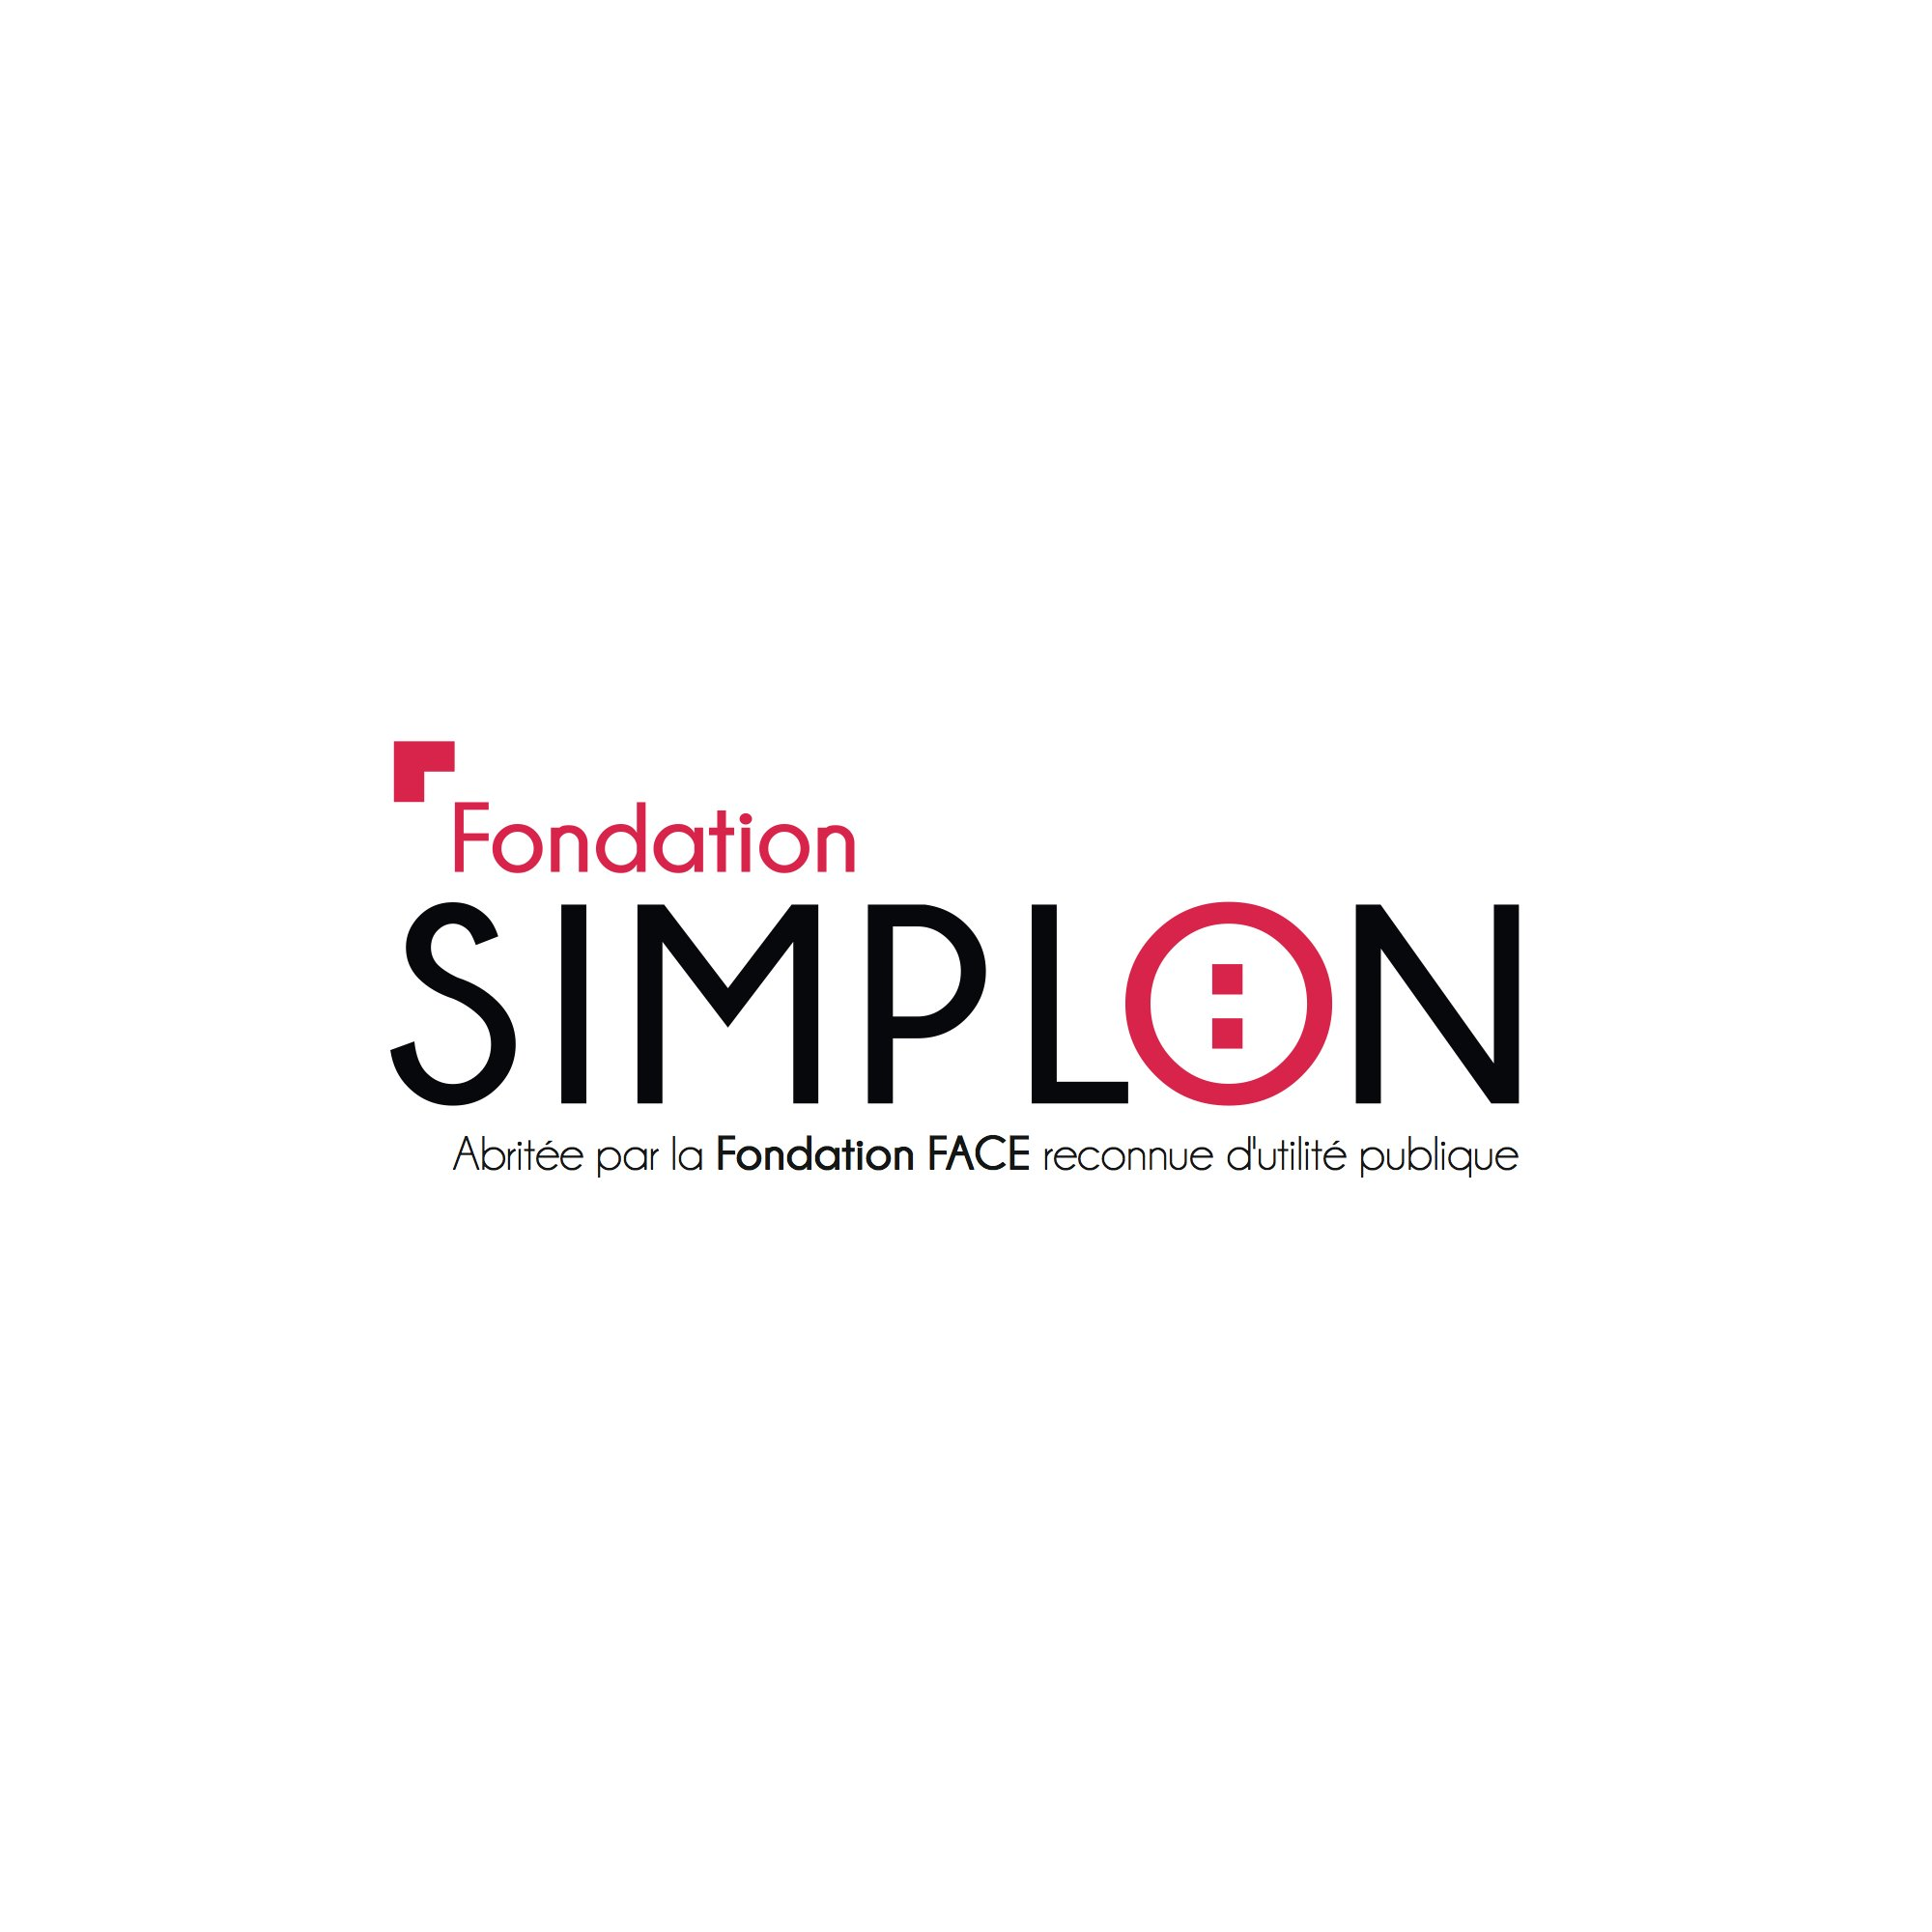 Association - FONDATION SIMPLON